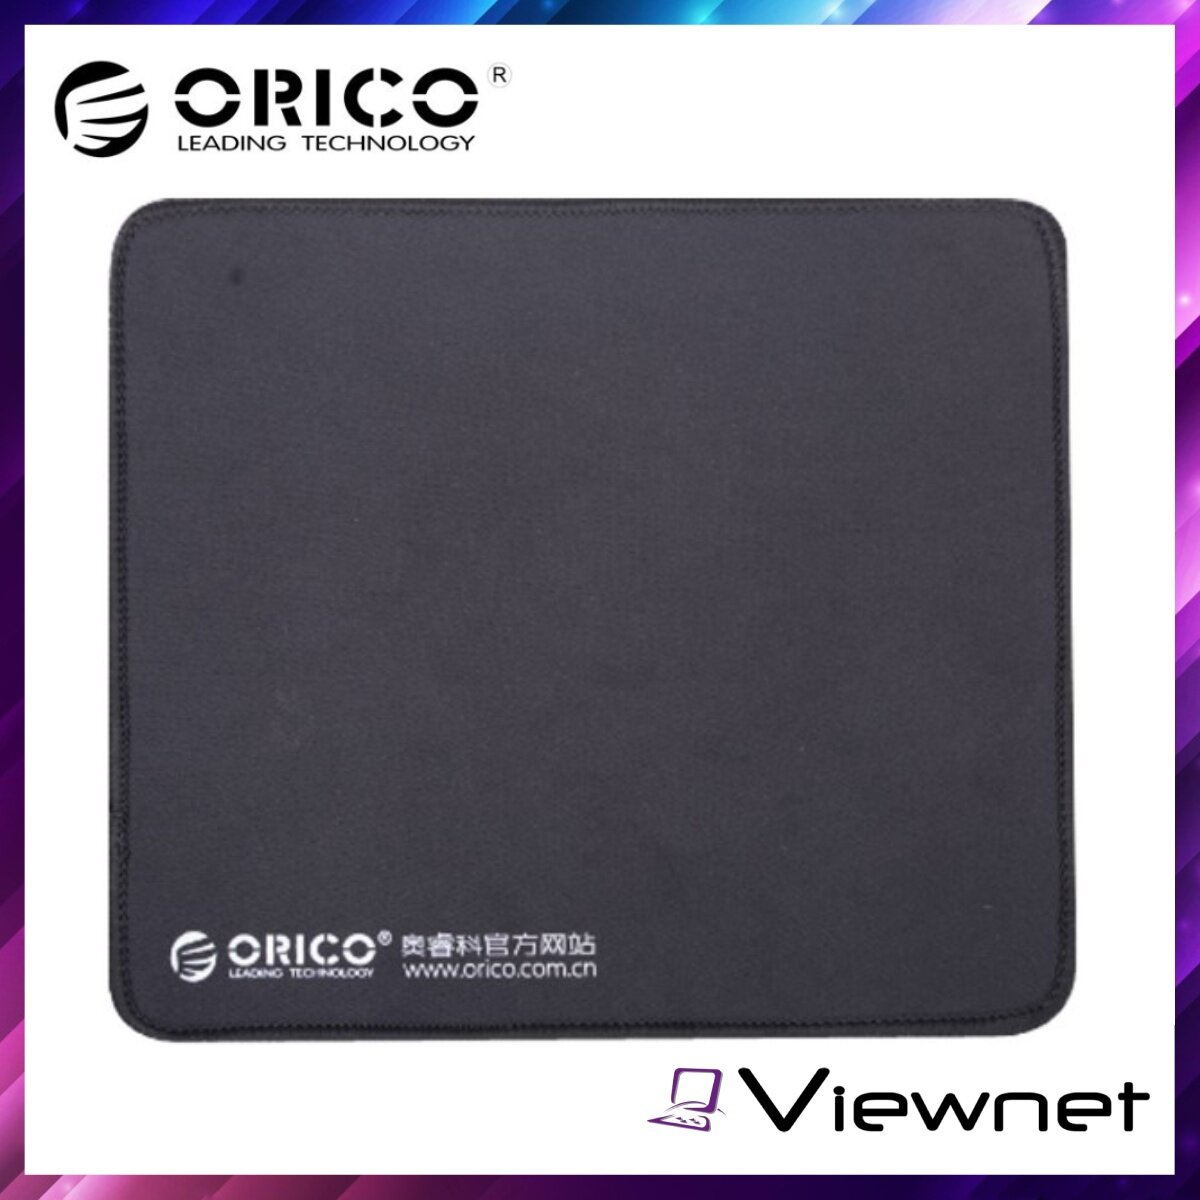 Orico 3mm Mouse Pad (MPS3025-BK), Soft Rubber, 300*250mm, nonslip